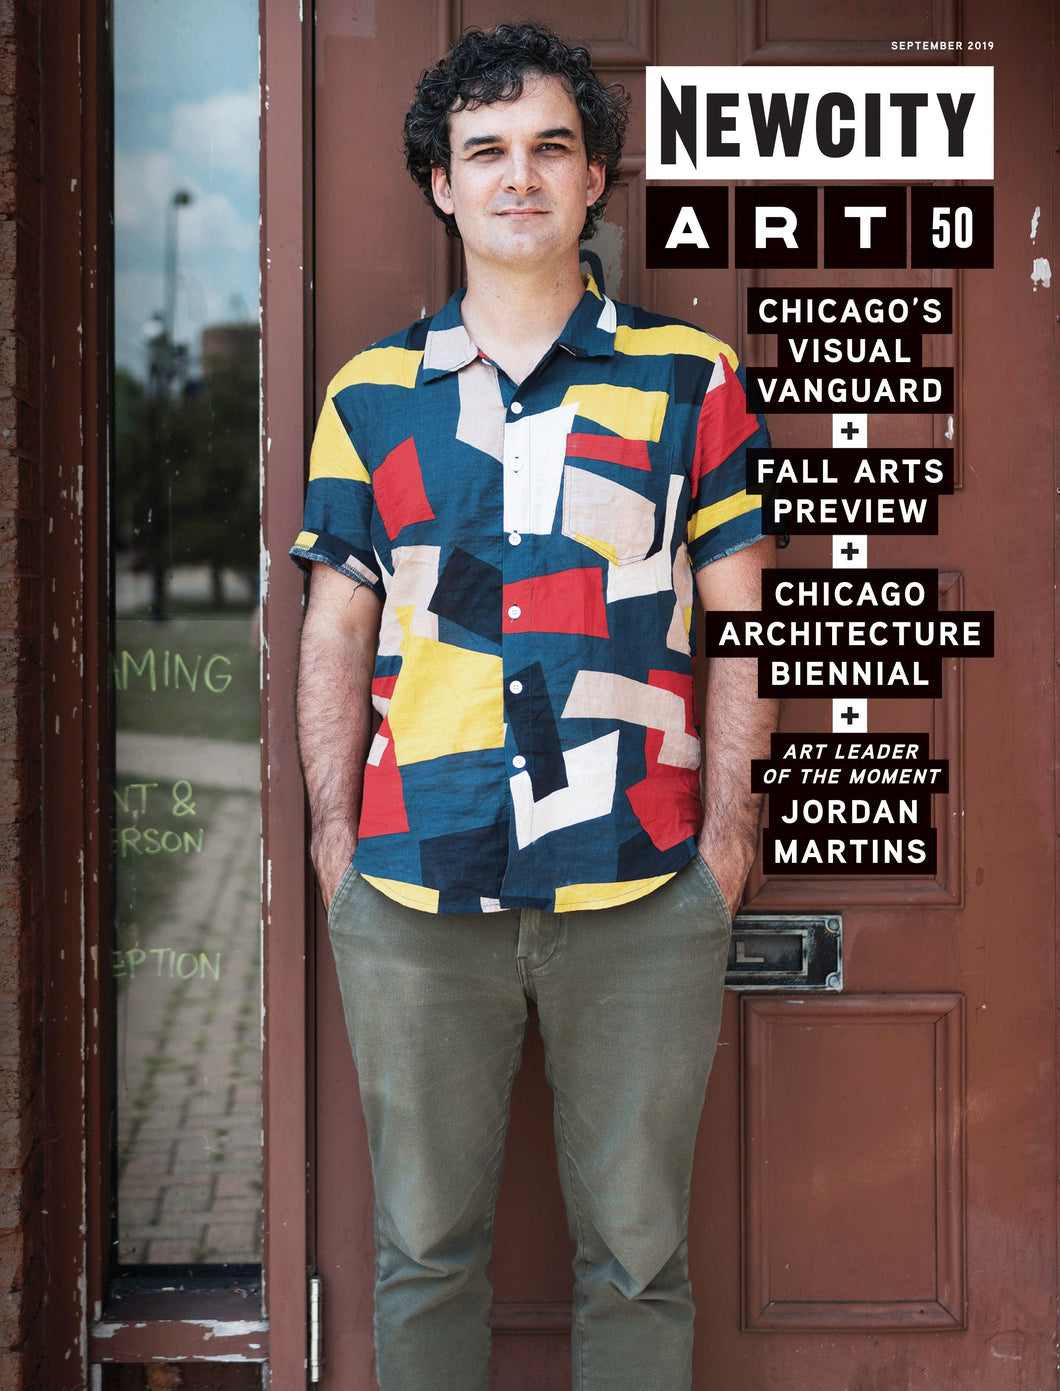 September 2019 Issue: Art 50 + Chicago Architecture Biennial + Fall Arts